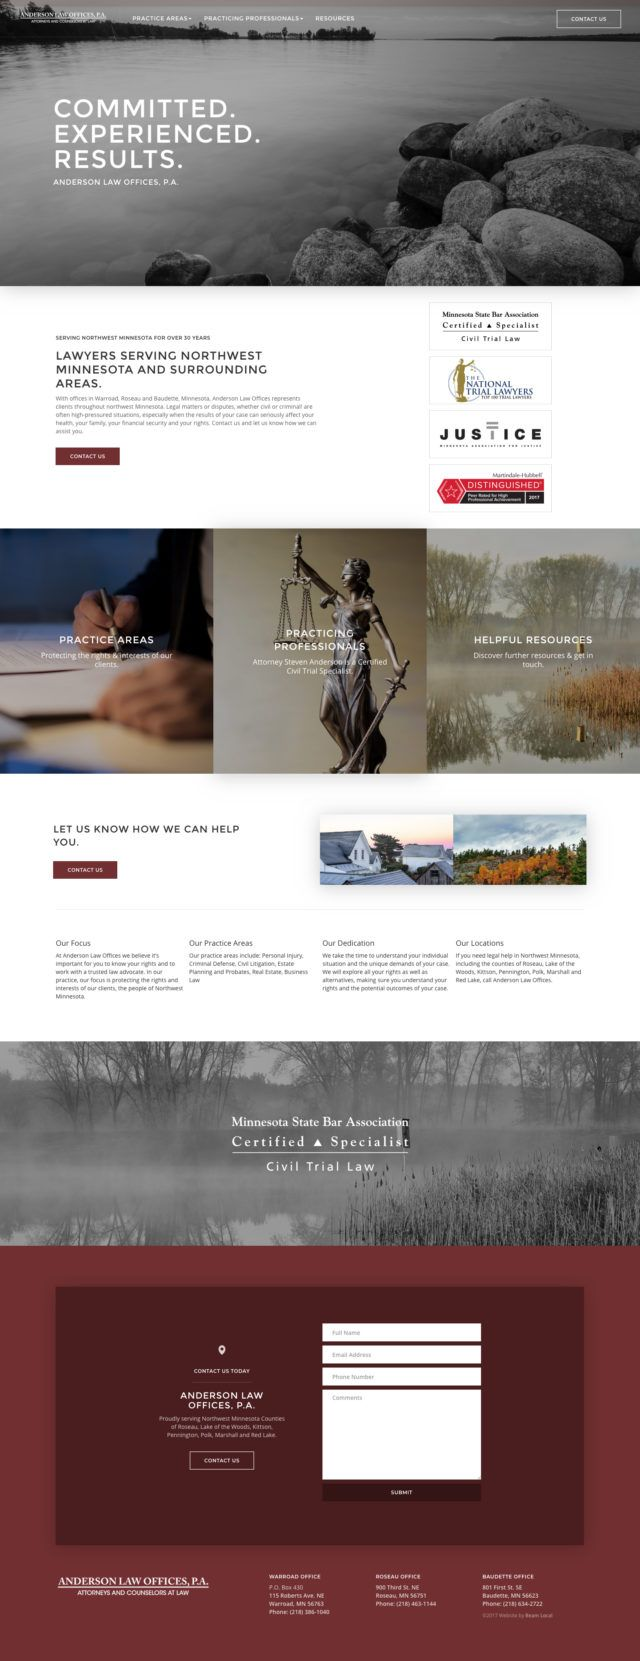 Are These The Best Lawyer Website Designs For 2018 With Images Lawyer Website Design Law Firm Website Law Firm Website Design